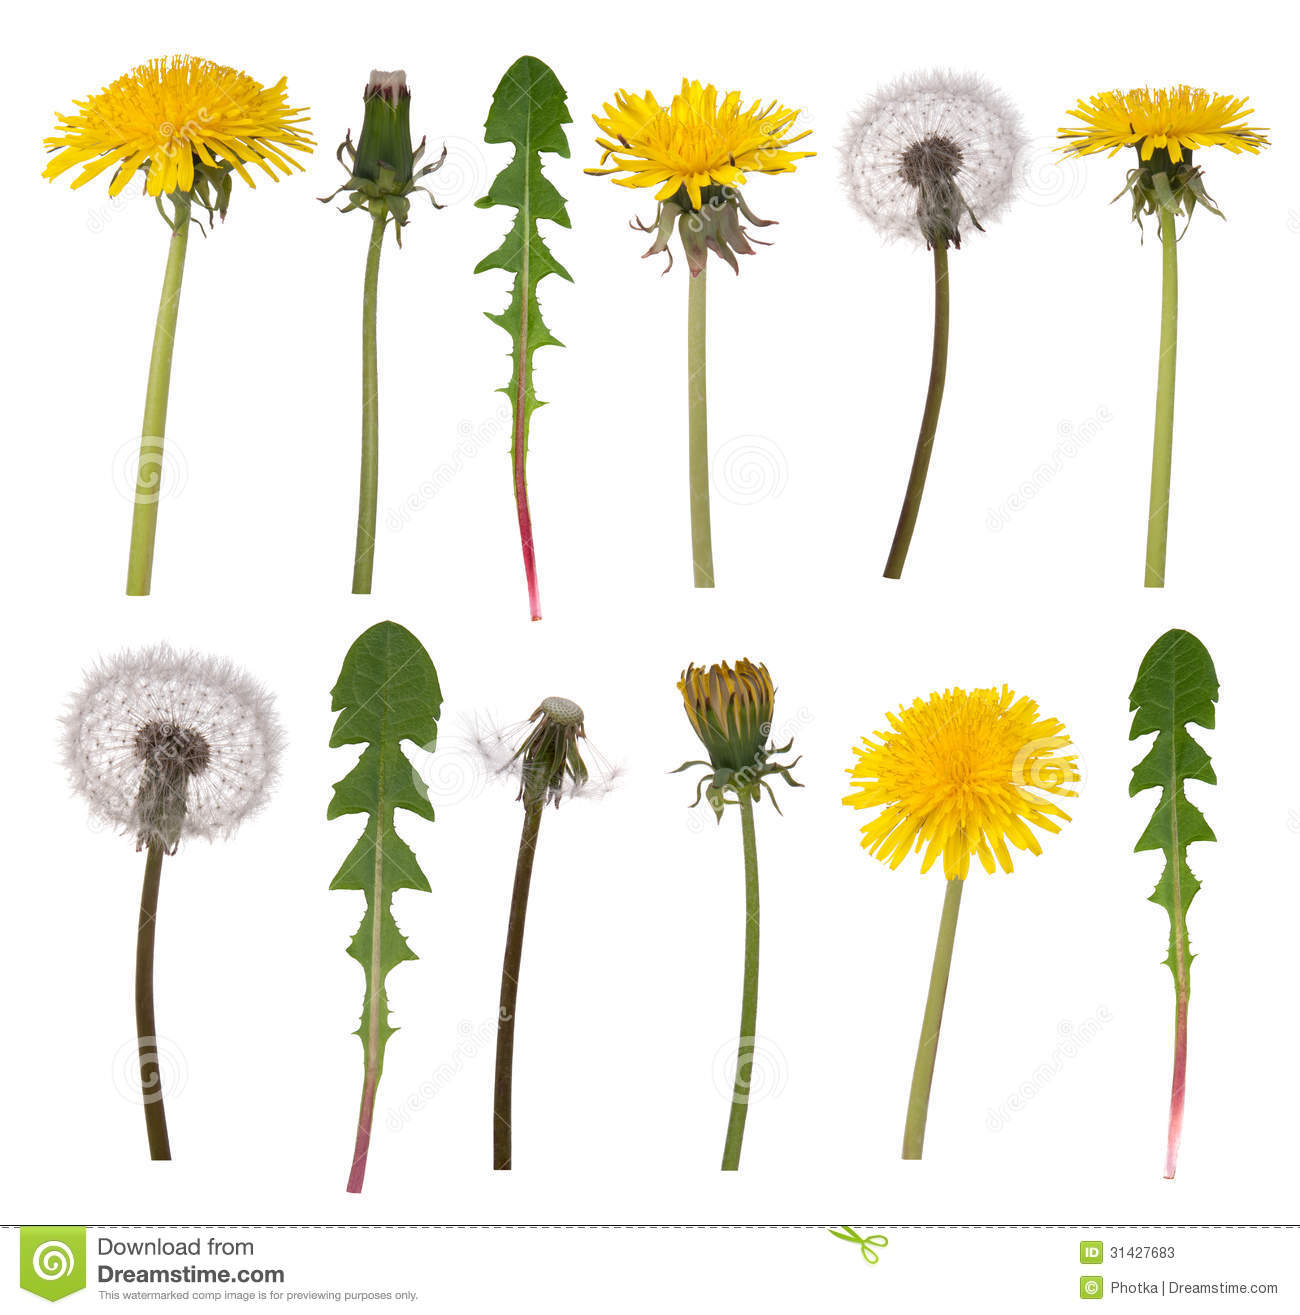 9 also Stock Photos Dandelion Flowers Leaves Isolated White Background Image31427683 likewise Voiture Voiture De Sport De Luxe 1300629 further Hcm Reunif moreover Camille Seaman. on beautiful architecture